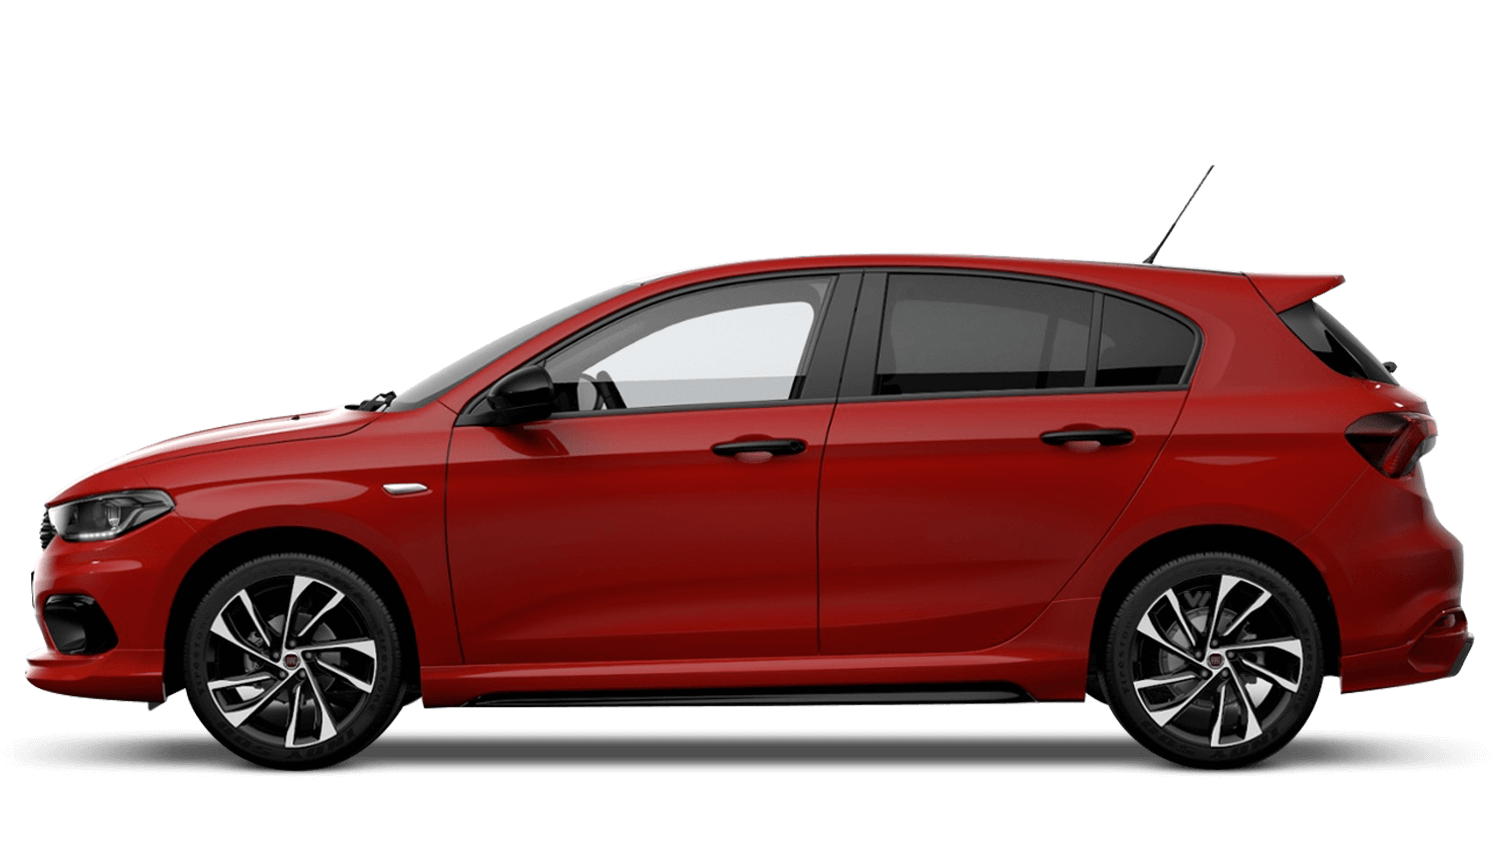 Passion Red with Black Roof (Bi-Colour) FIAT Tipo Hatchback